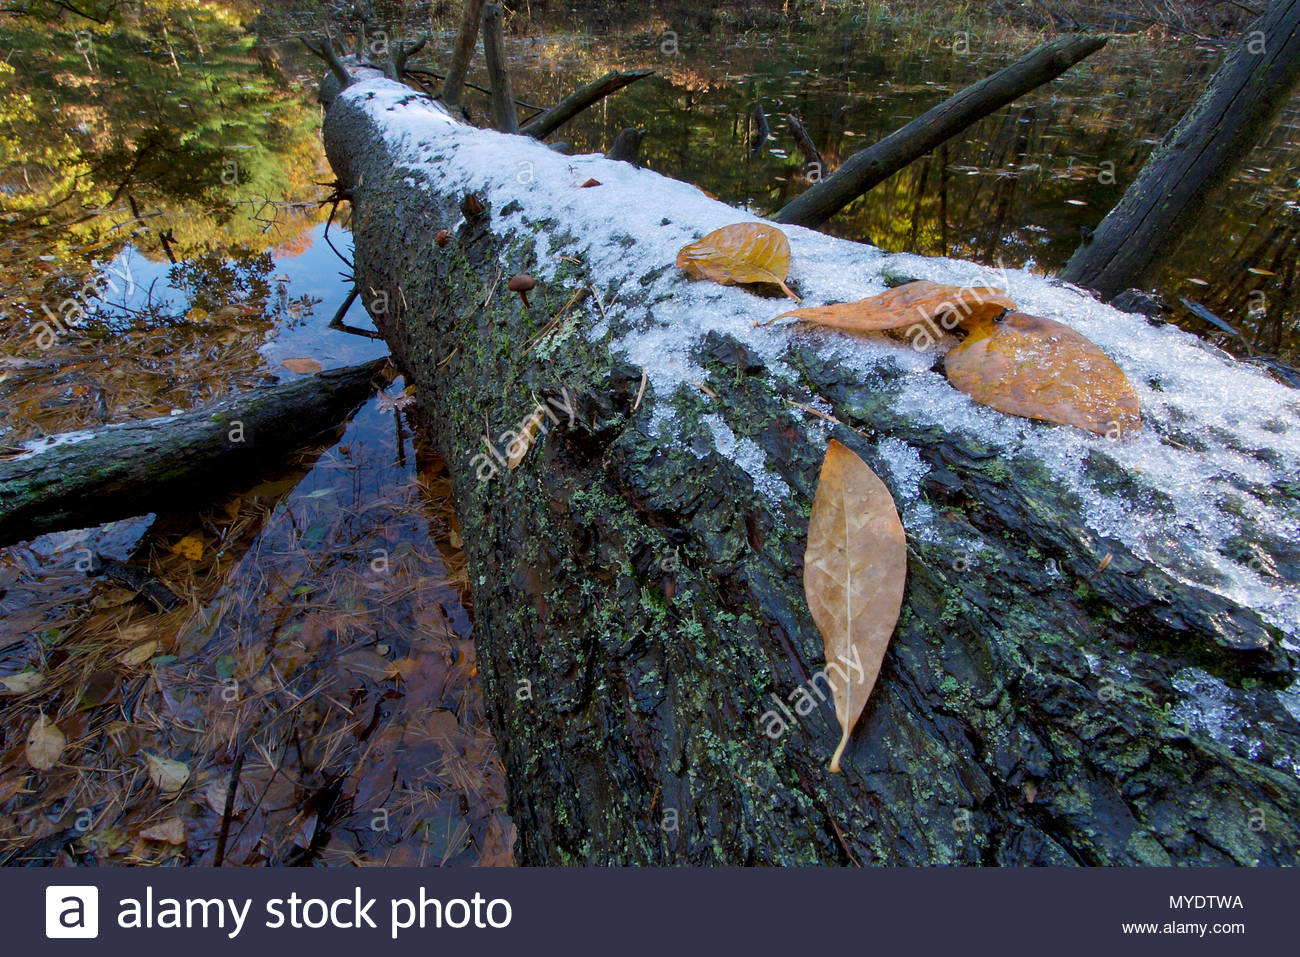 Snow and dry leaves on a tree trunk in Heywood's Meadow near Walden Pond. - Stock Image